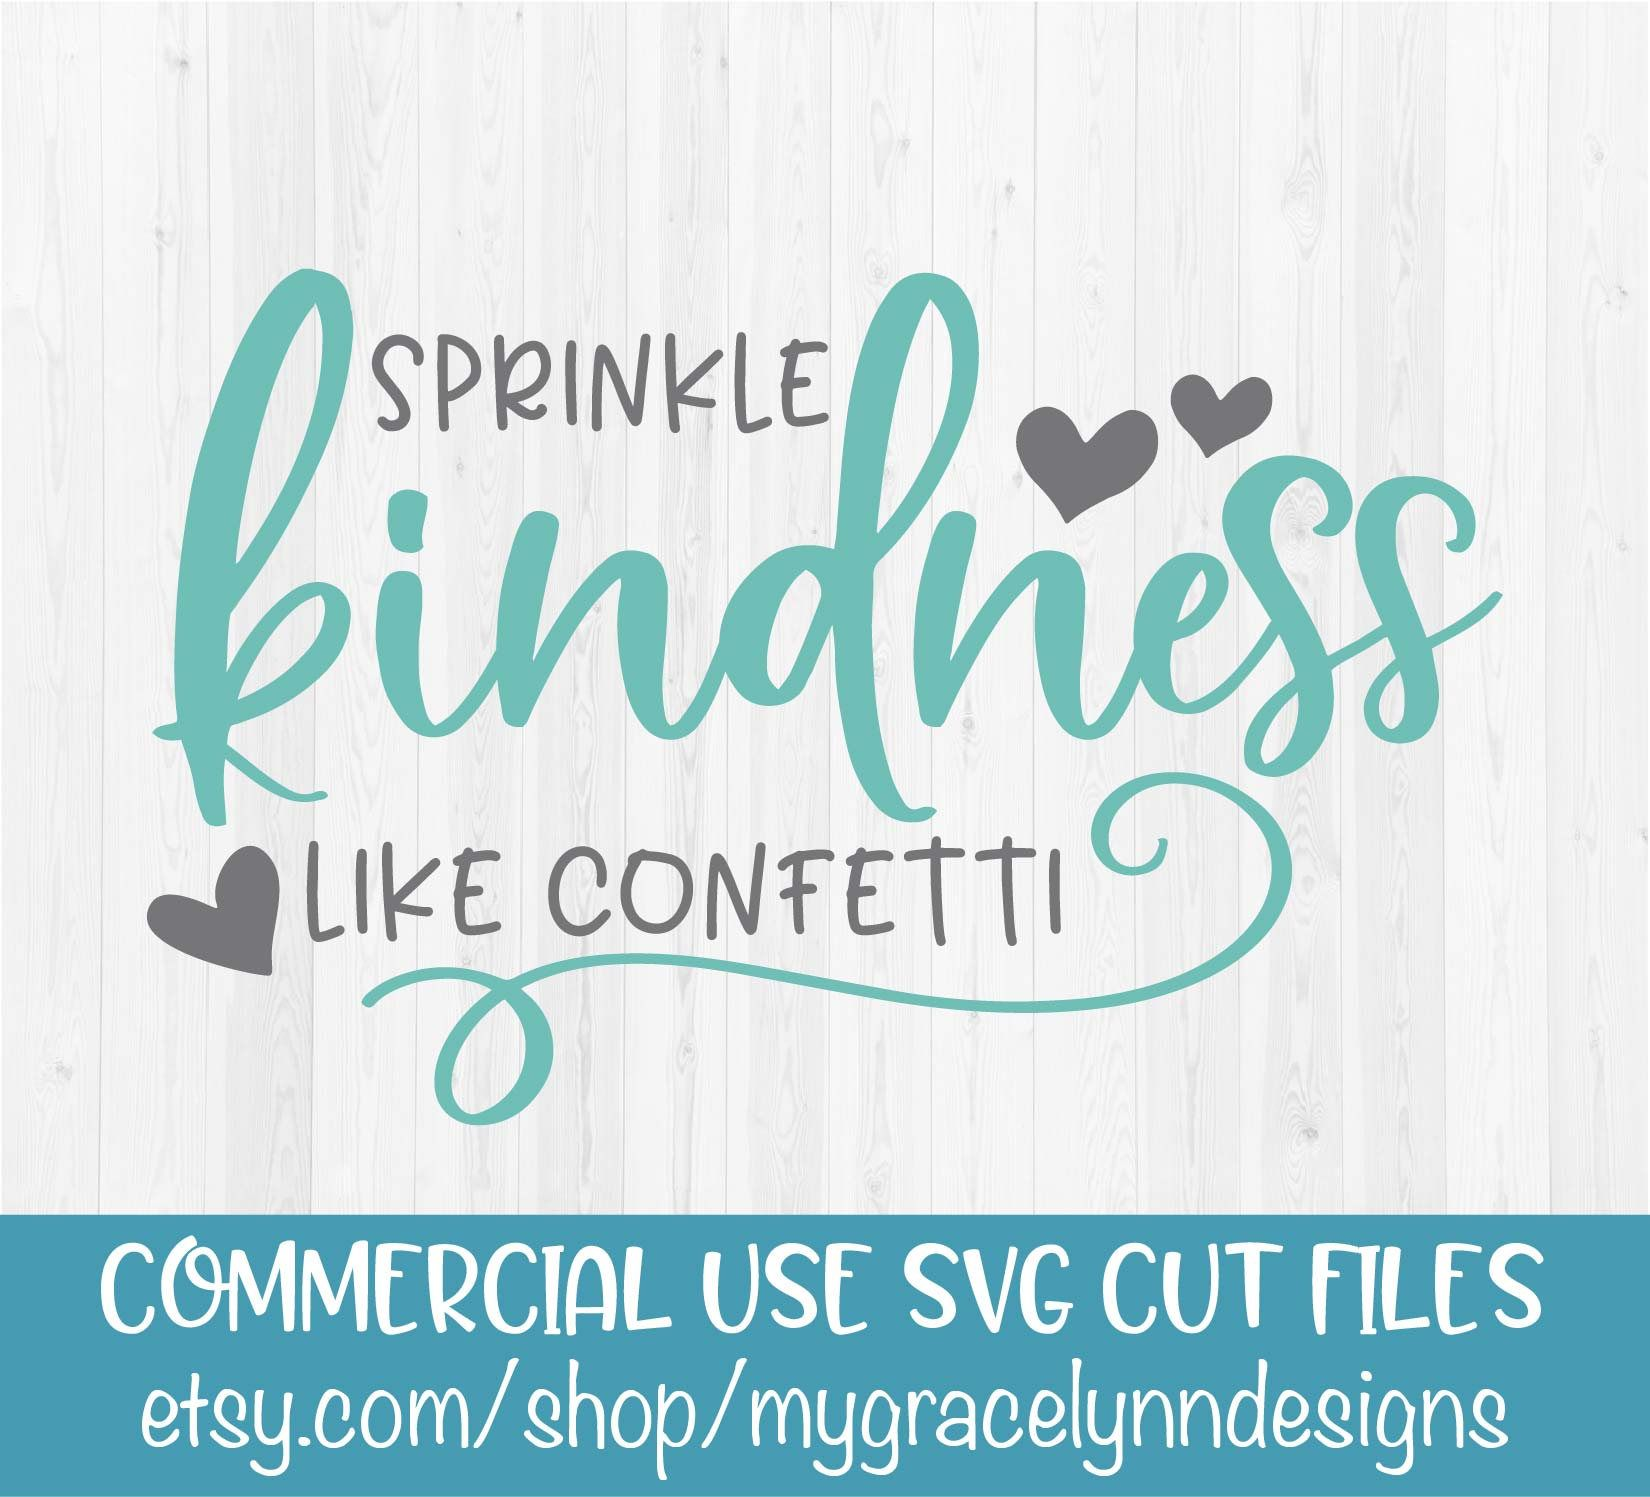 Sprinkle Kindness Like Confetti - Digital Cut File - SVG, DXF & PNG